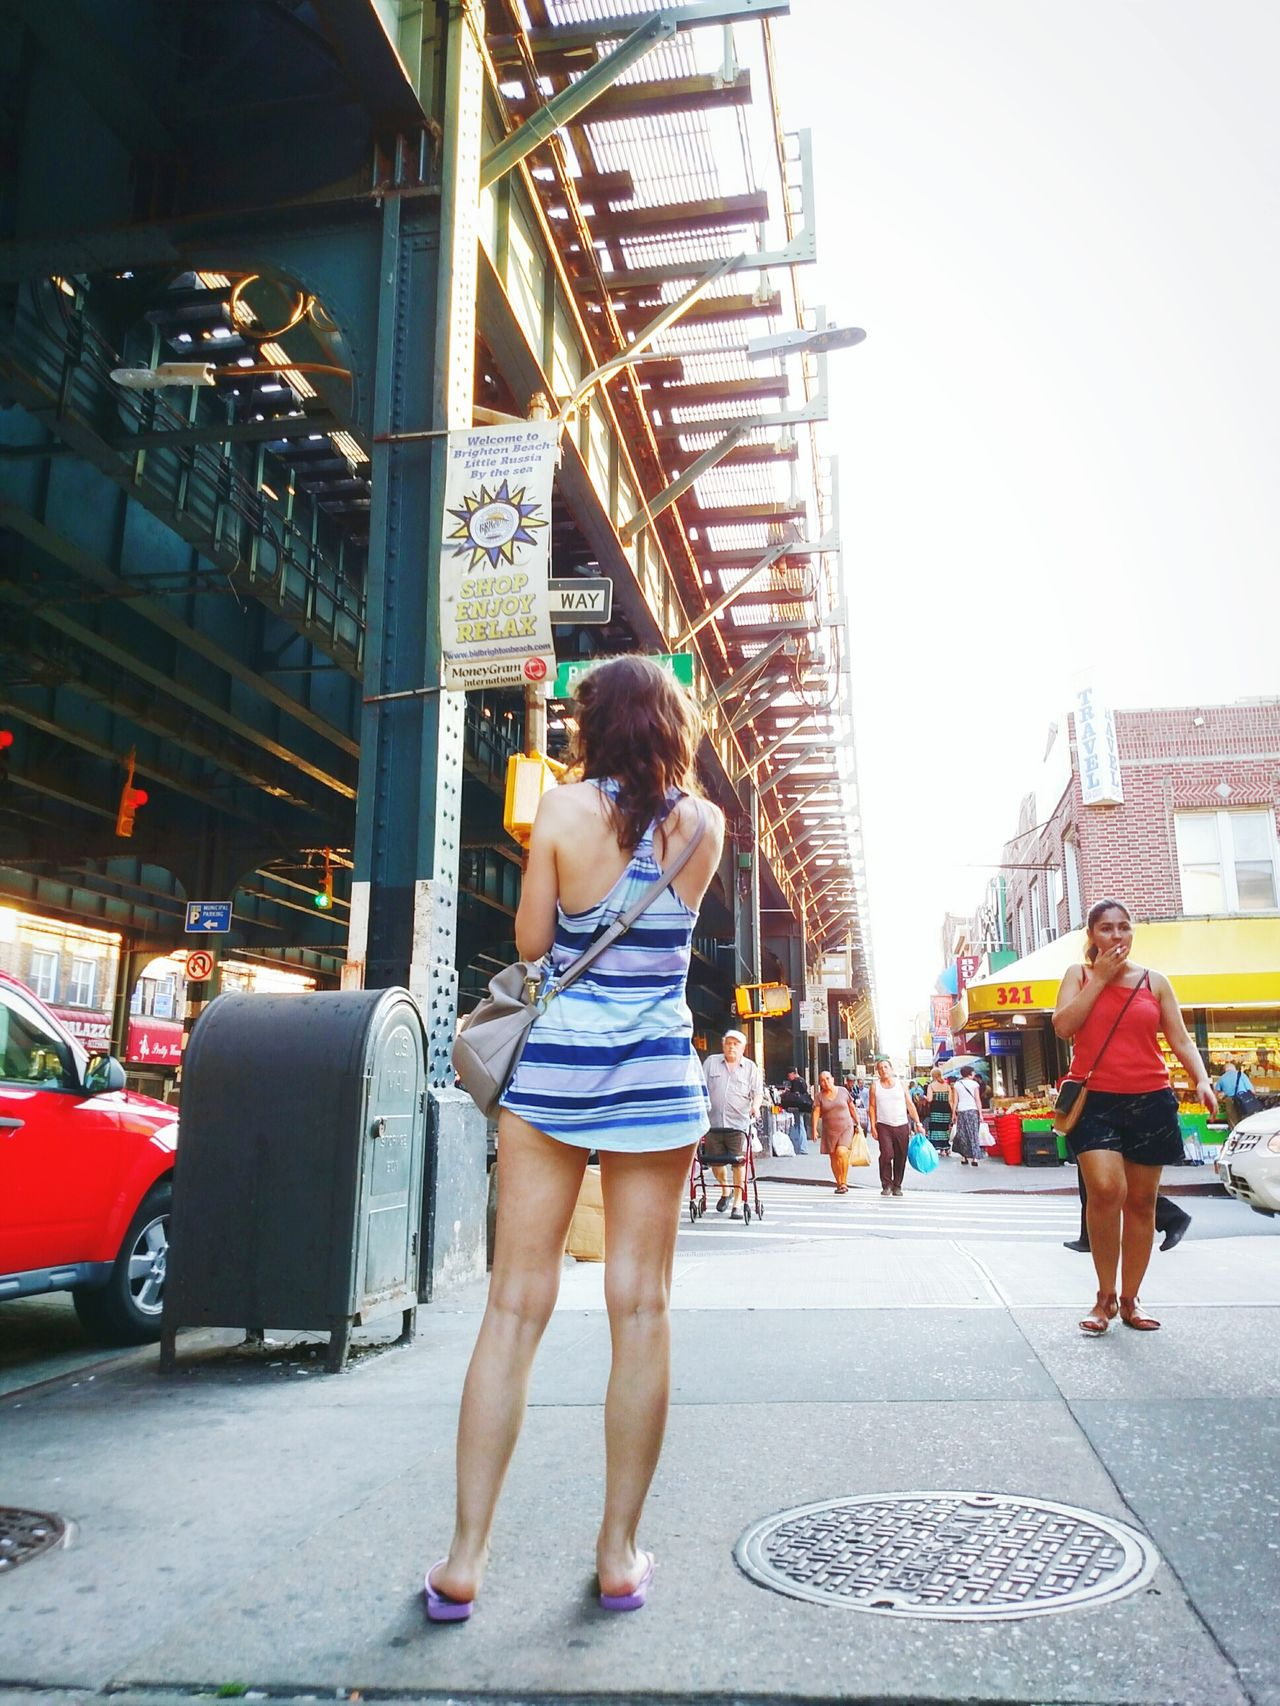 Capture The Moment Girl Street Photography Sexygirl Sexylegs Photographer Perspectives NYC New York Urban Lifestyle